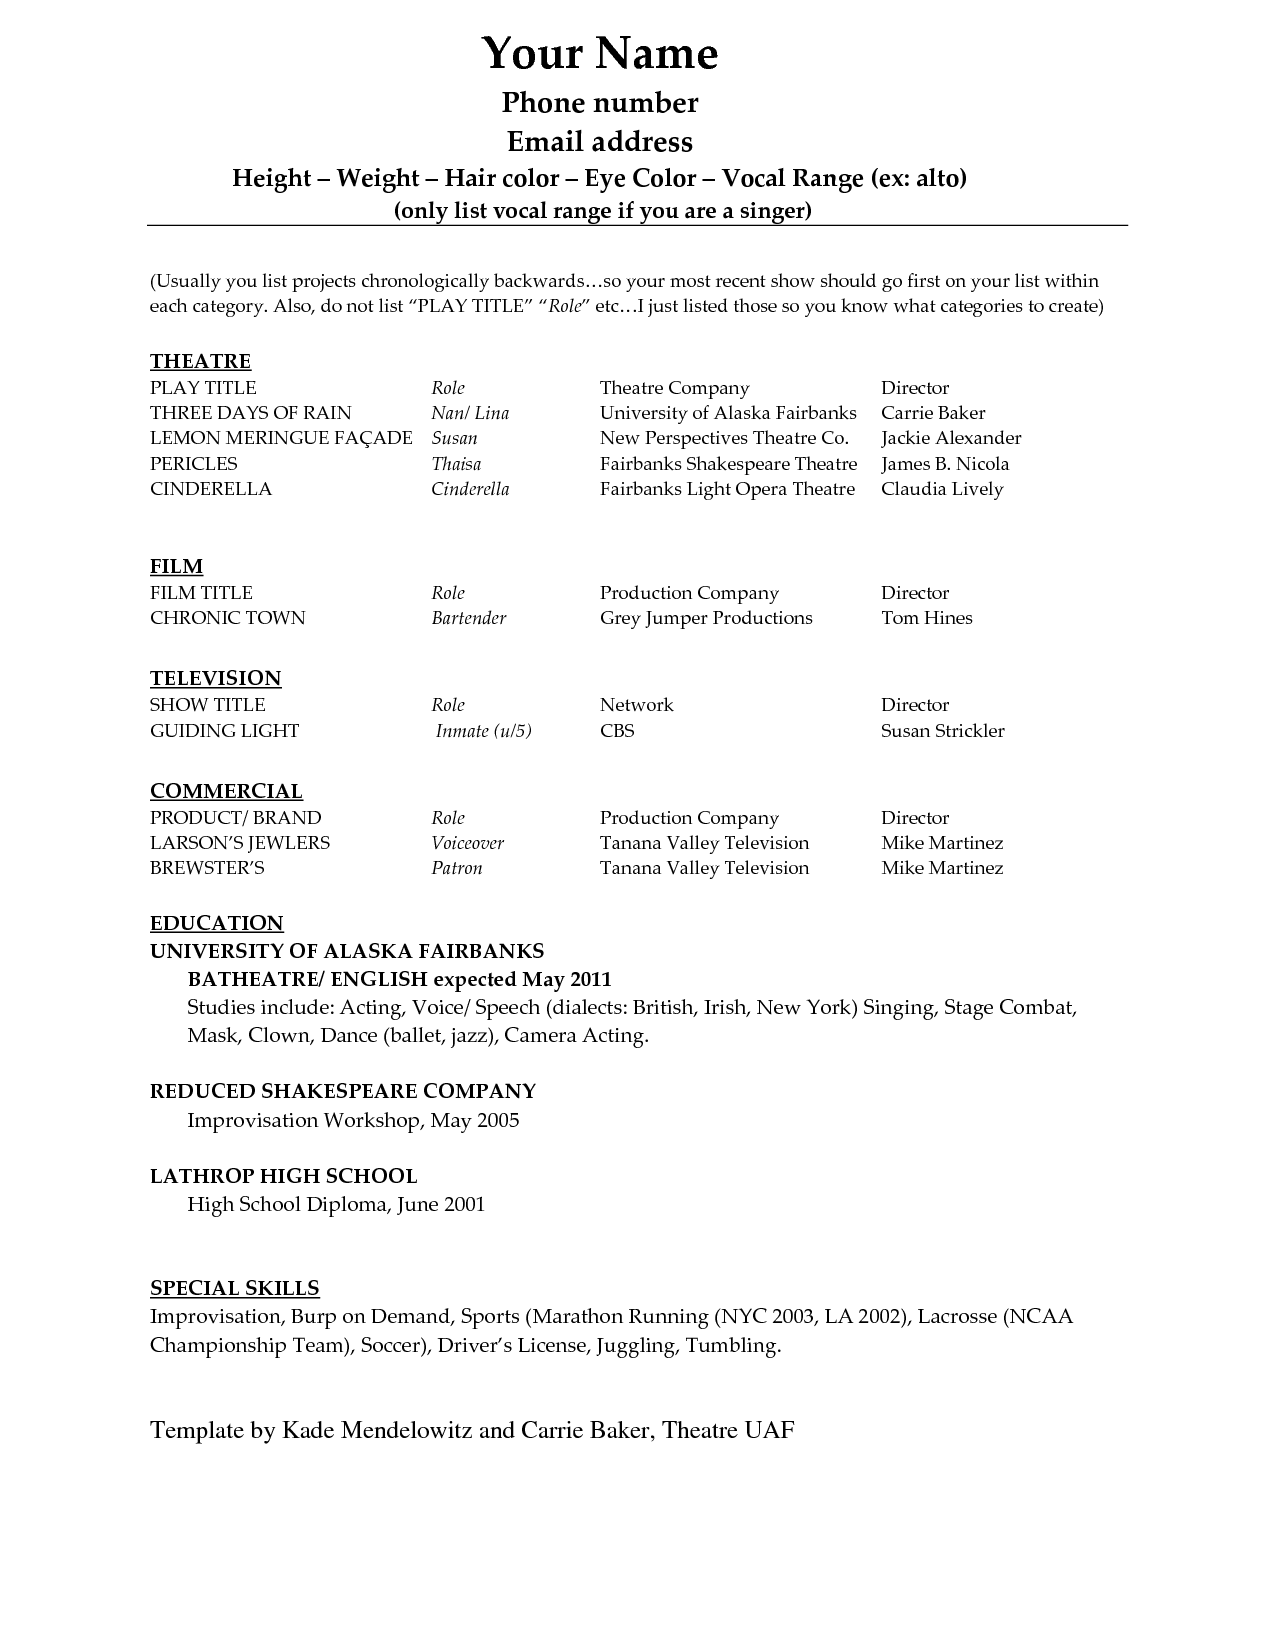 Acting Resume Template Download Free   Http://www.resumecareer.info/  How To Download A Resume